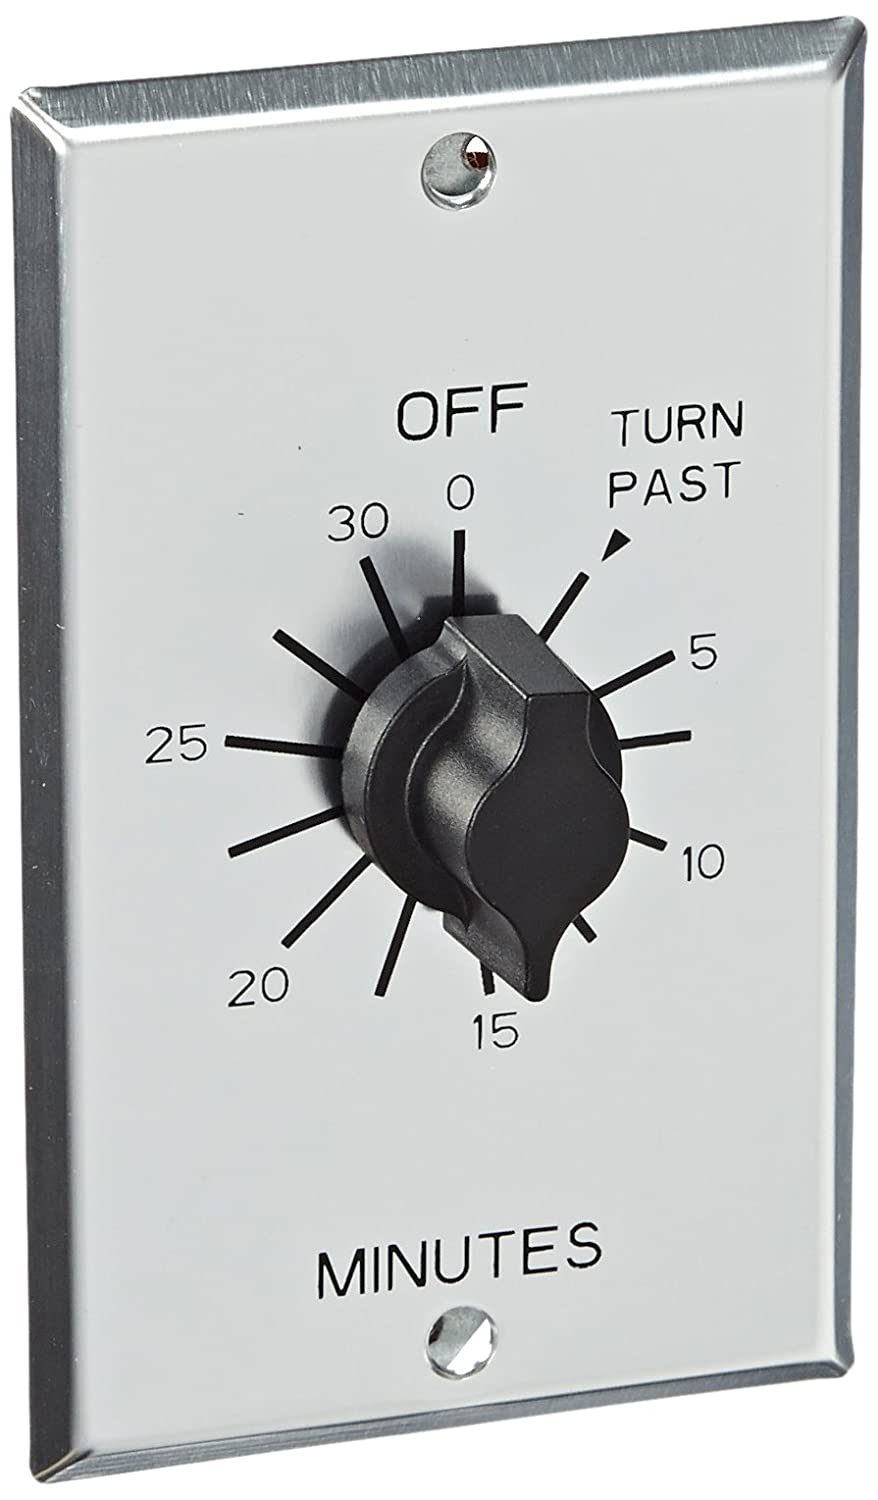 NSi Industries TORK C530M In-Wall Spring Wound 30-Minute Commercial Grade Mechanical Interval Timer Switch - for Fans, HVAC, Whirlpools, Motors and Pumps - Automatic Off  - Metal Single-Gang Wall Plate Included